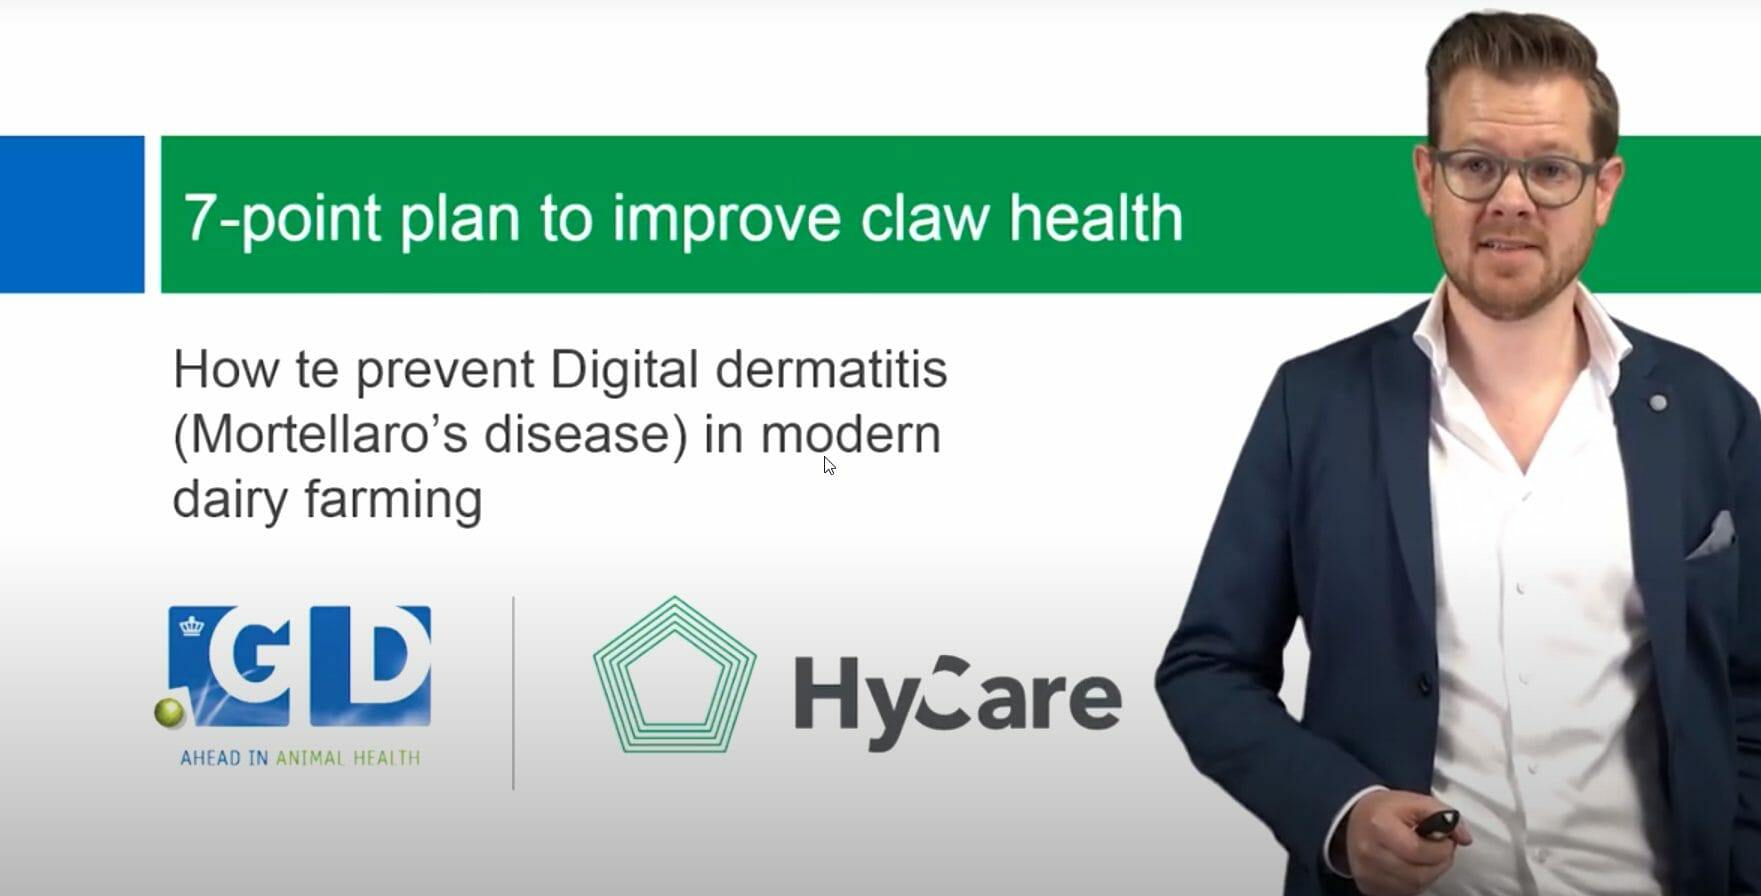 Webinar Royal GD & HyCare: Digital Dermatitis problems in dairy